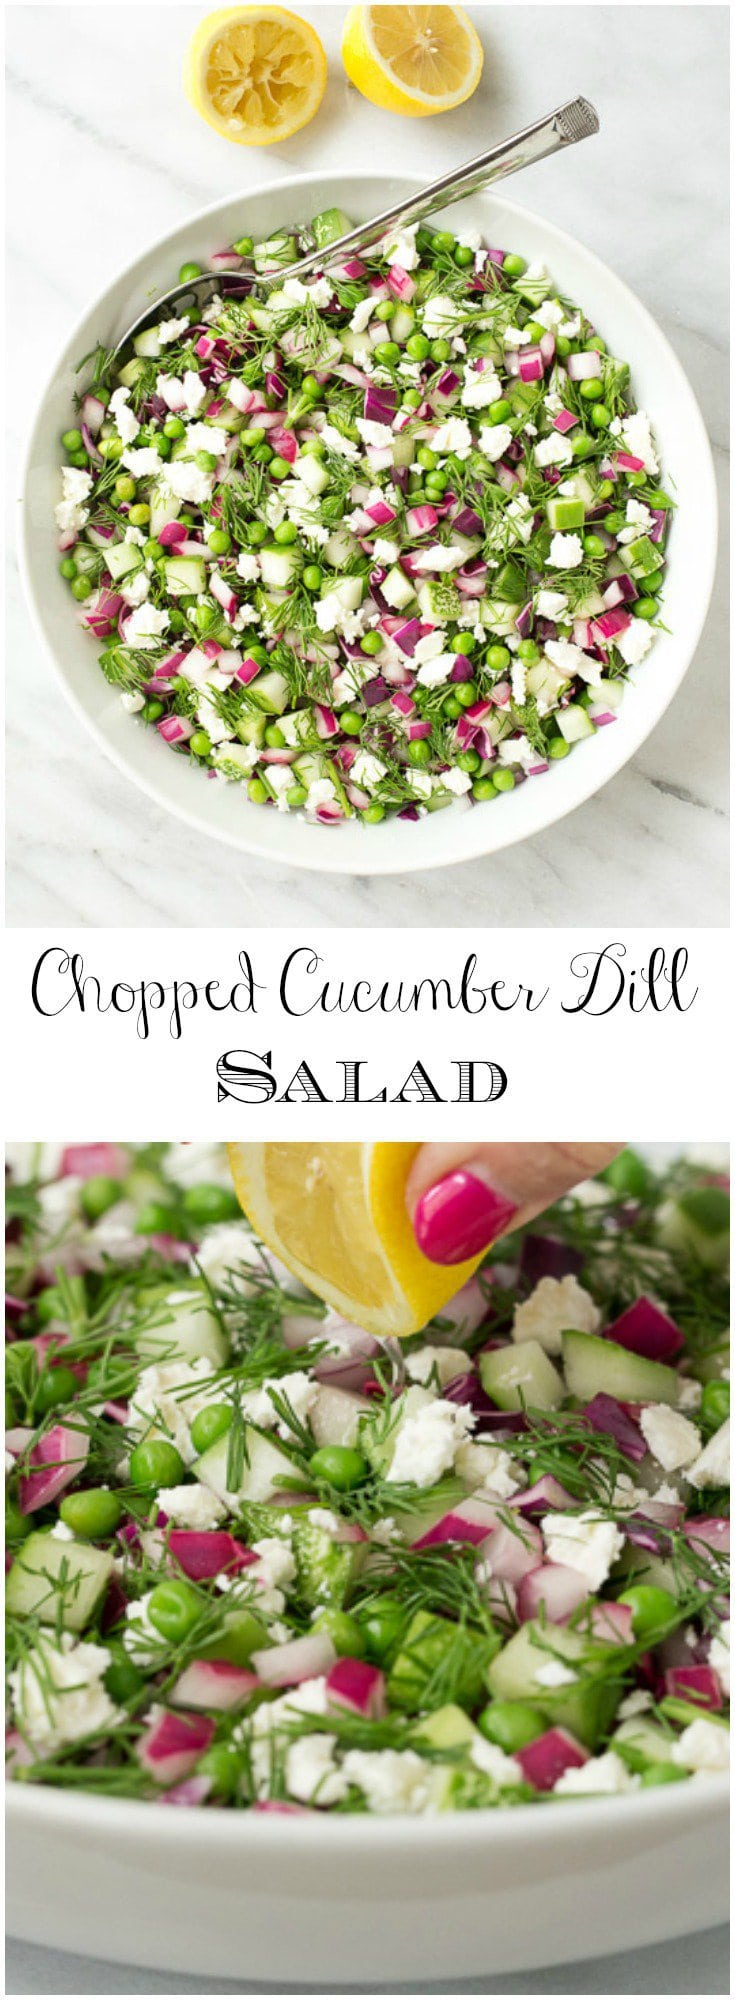 This simple Chopped Cucumber Dill salad pairs well with grilled entrees and is perfect for parties and potlucks. Make extra as leftovers are delicious!